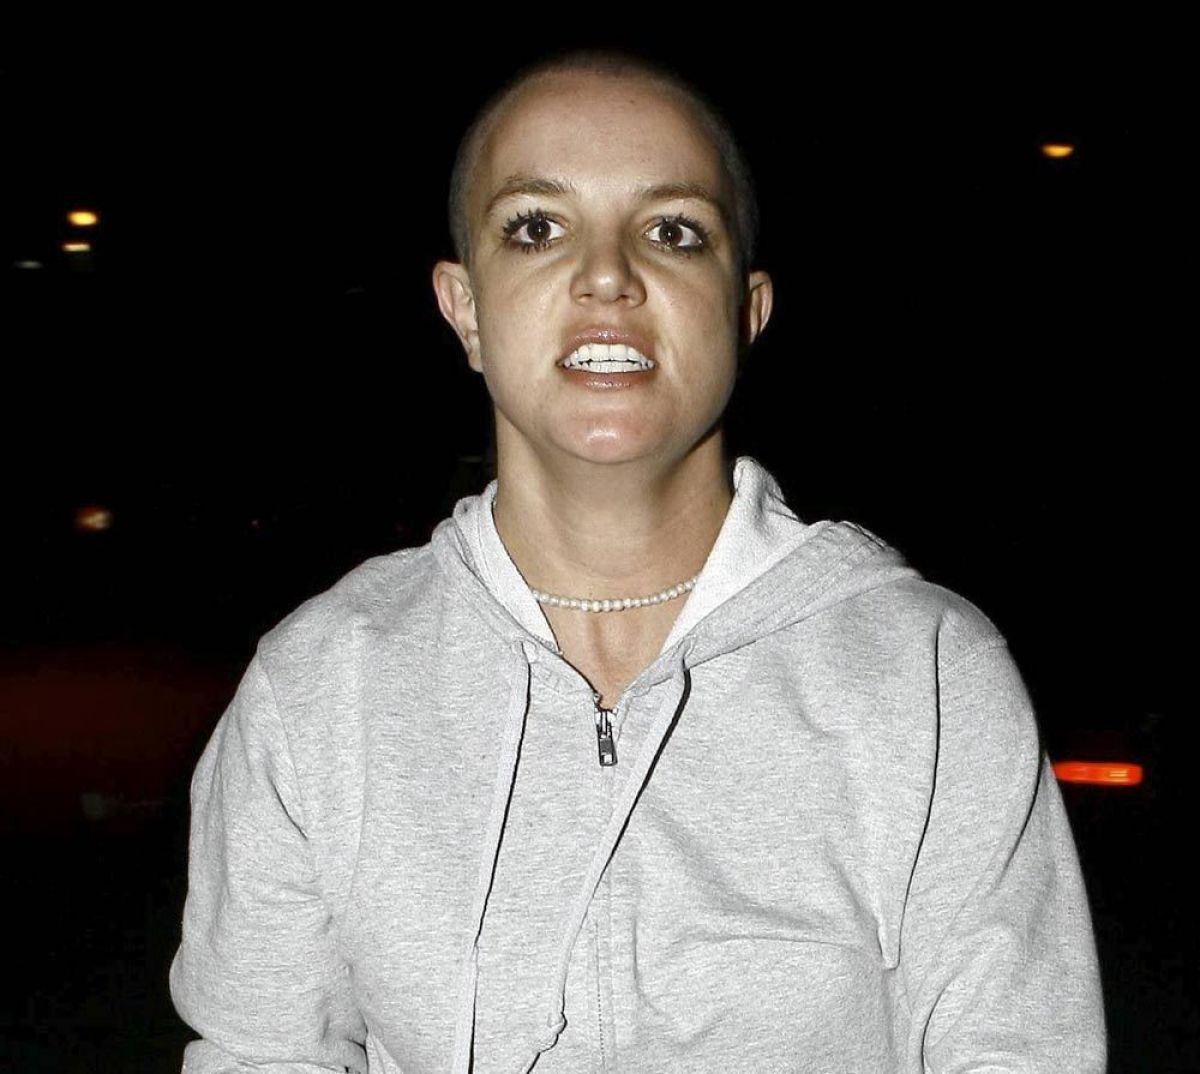 bald britney spears